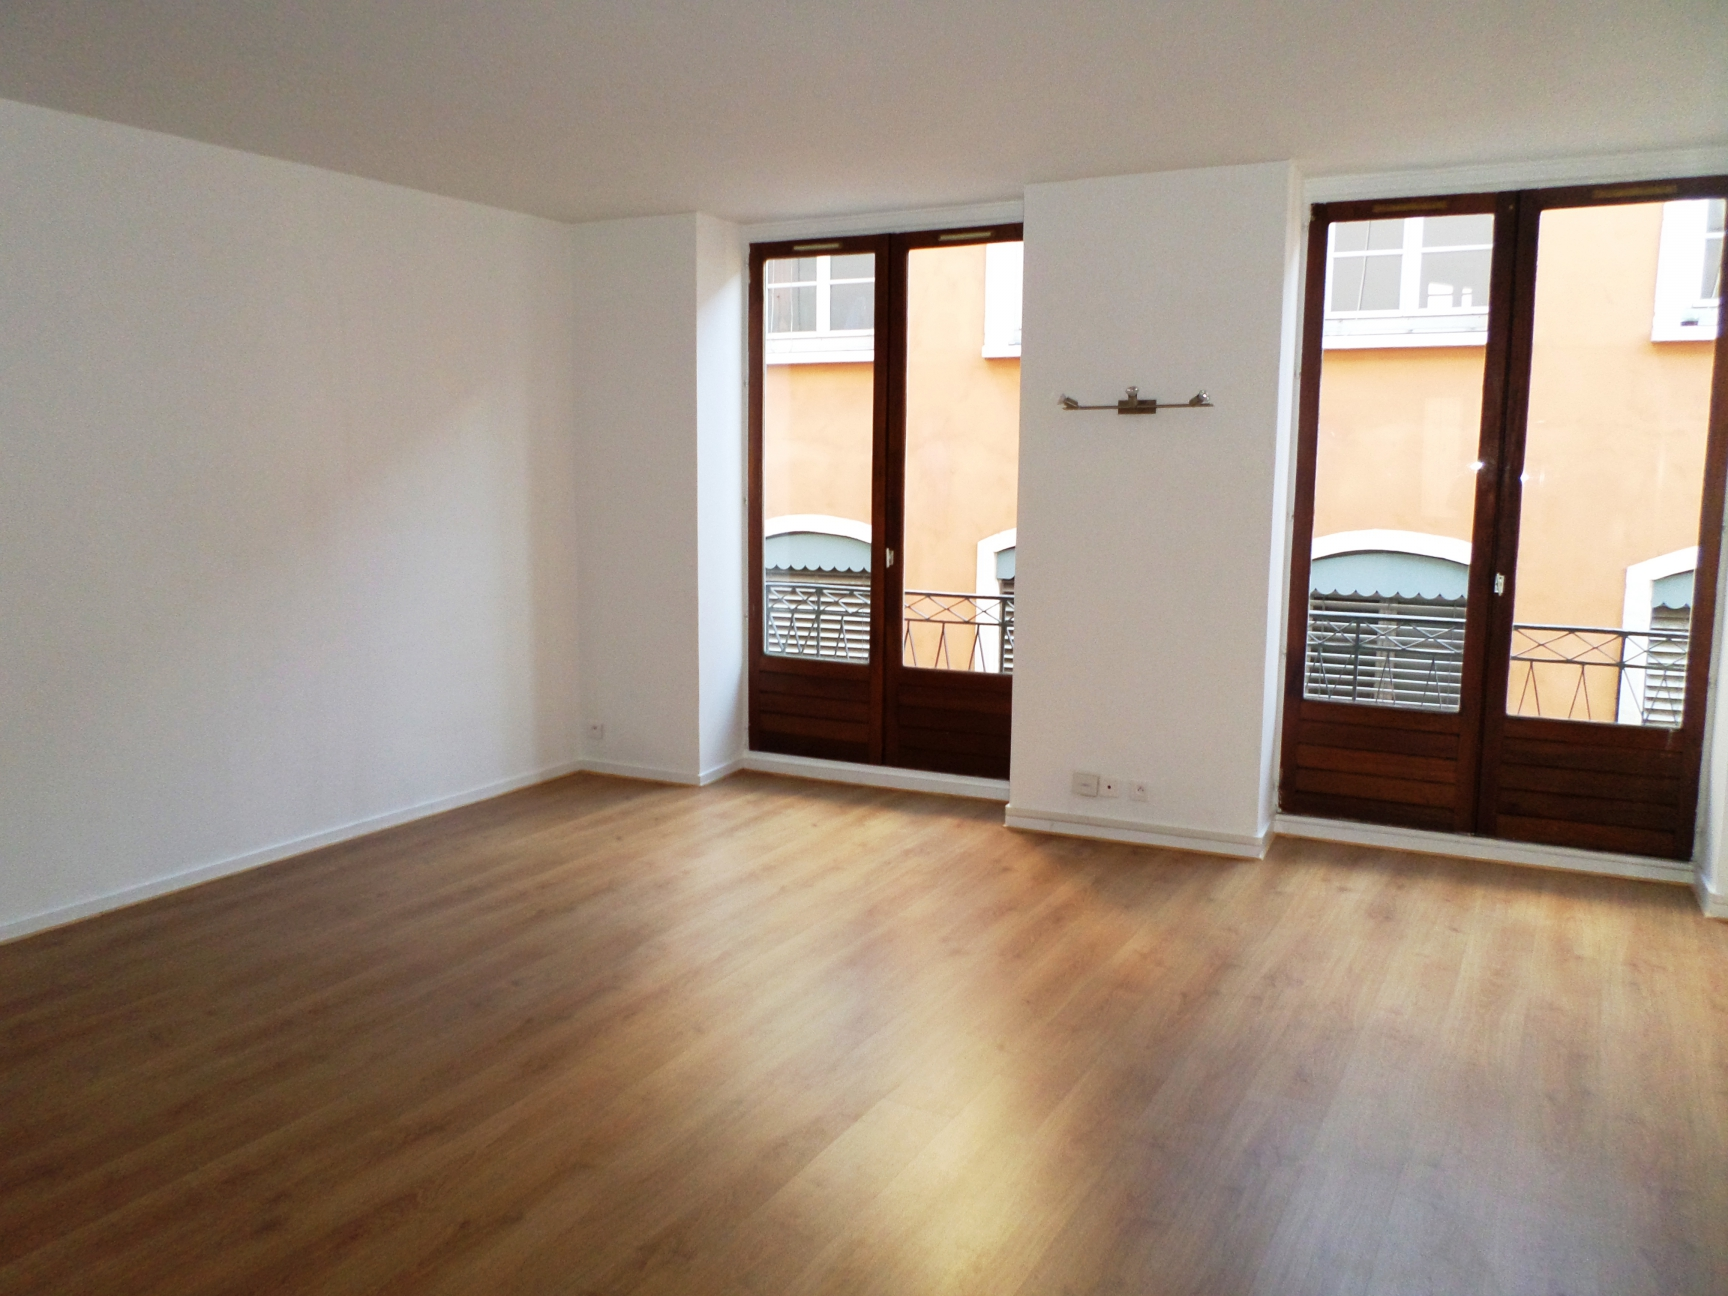 Photos de Appartement à Lyon (69001)